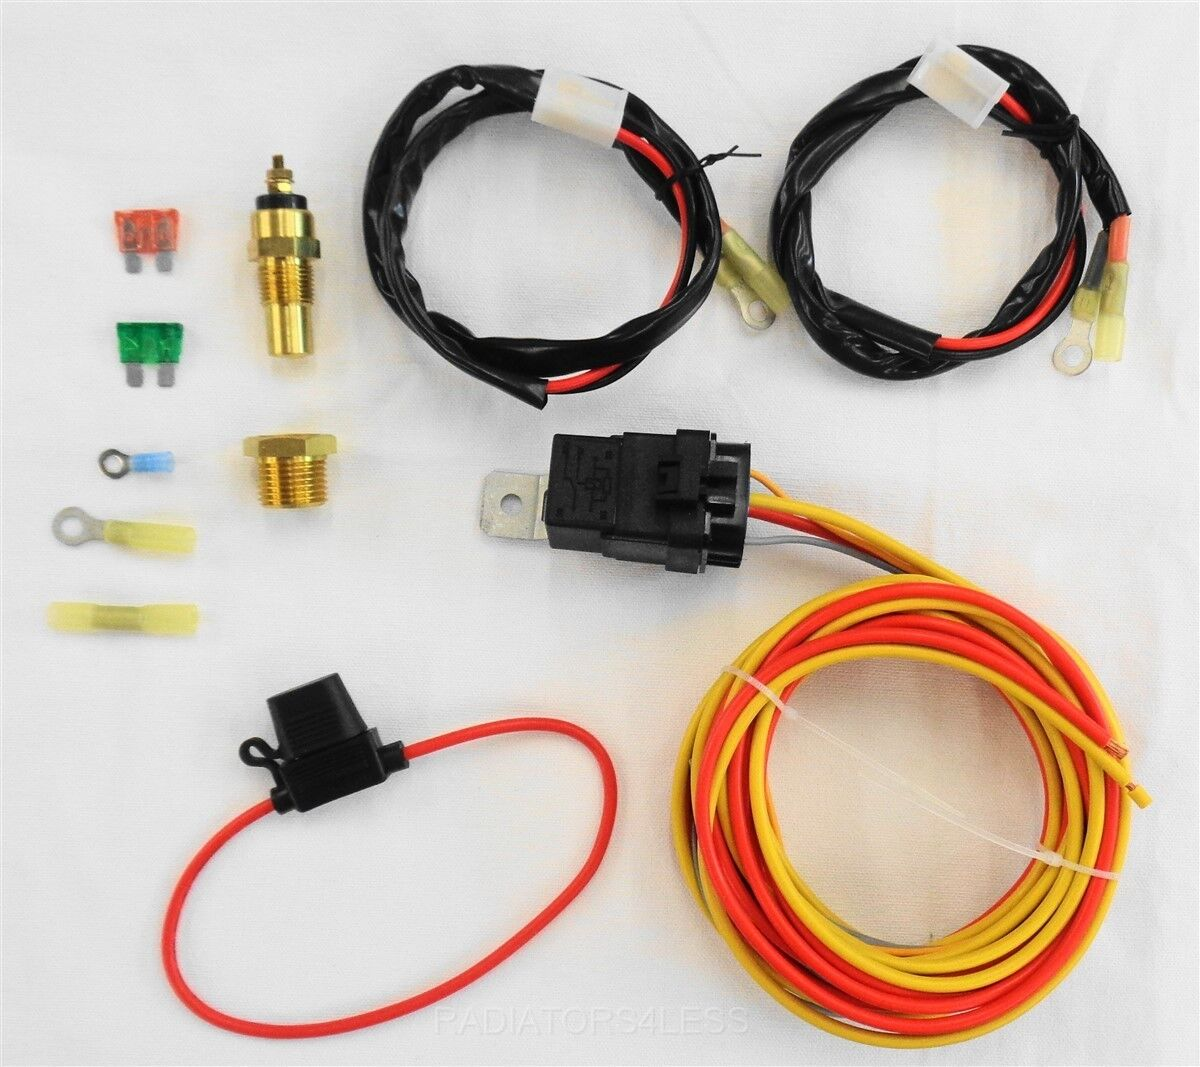 radiators4less new dual electric cooling fan wiring install kit 185 165 thermostat 50 amp relay